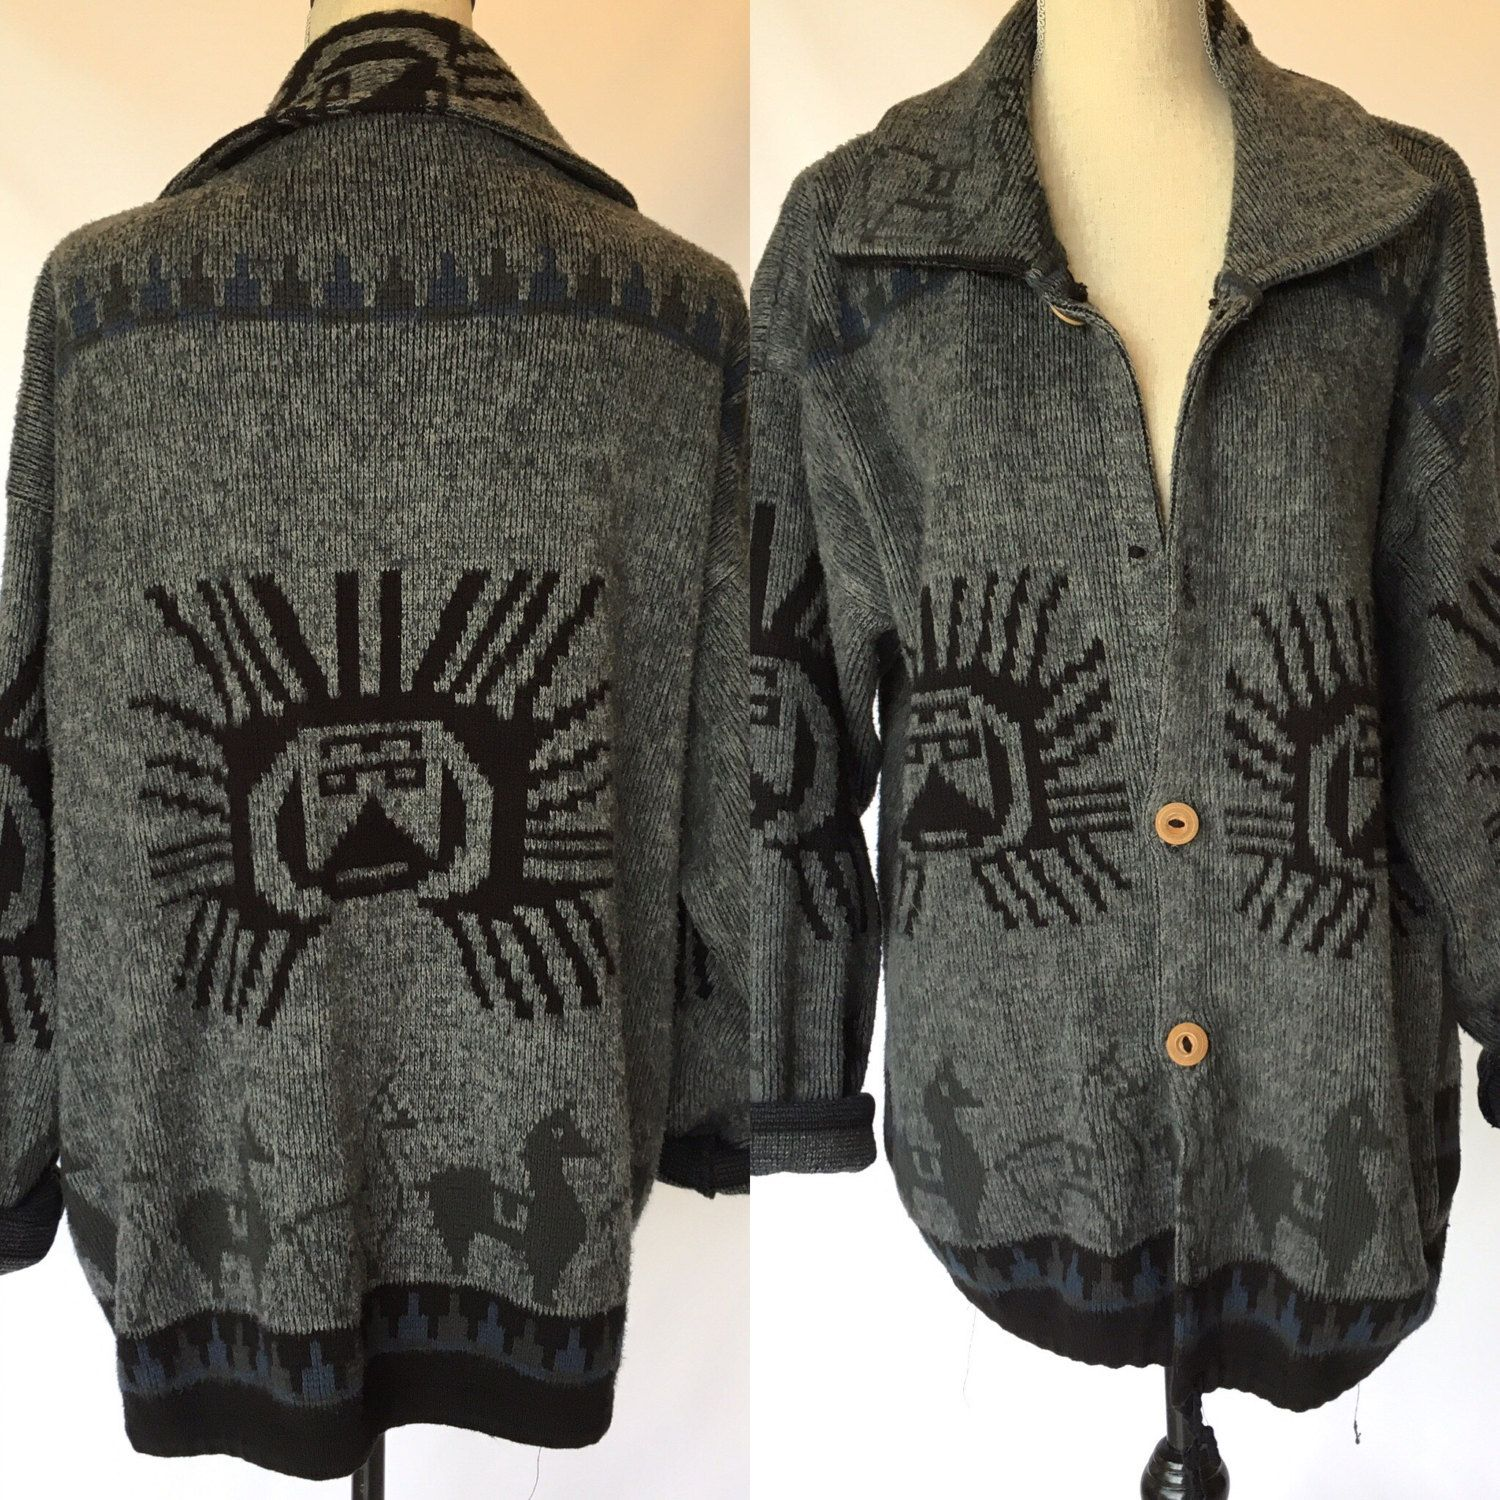 Woven Sun Wool Knit Sweater Cardigan menz womens vintage fuzzy ...